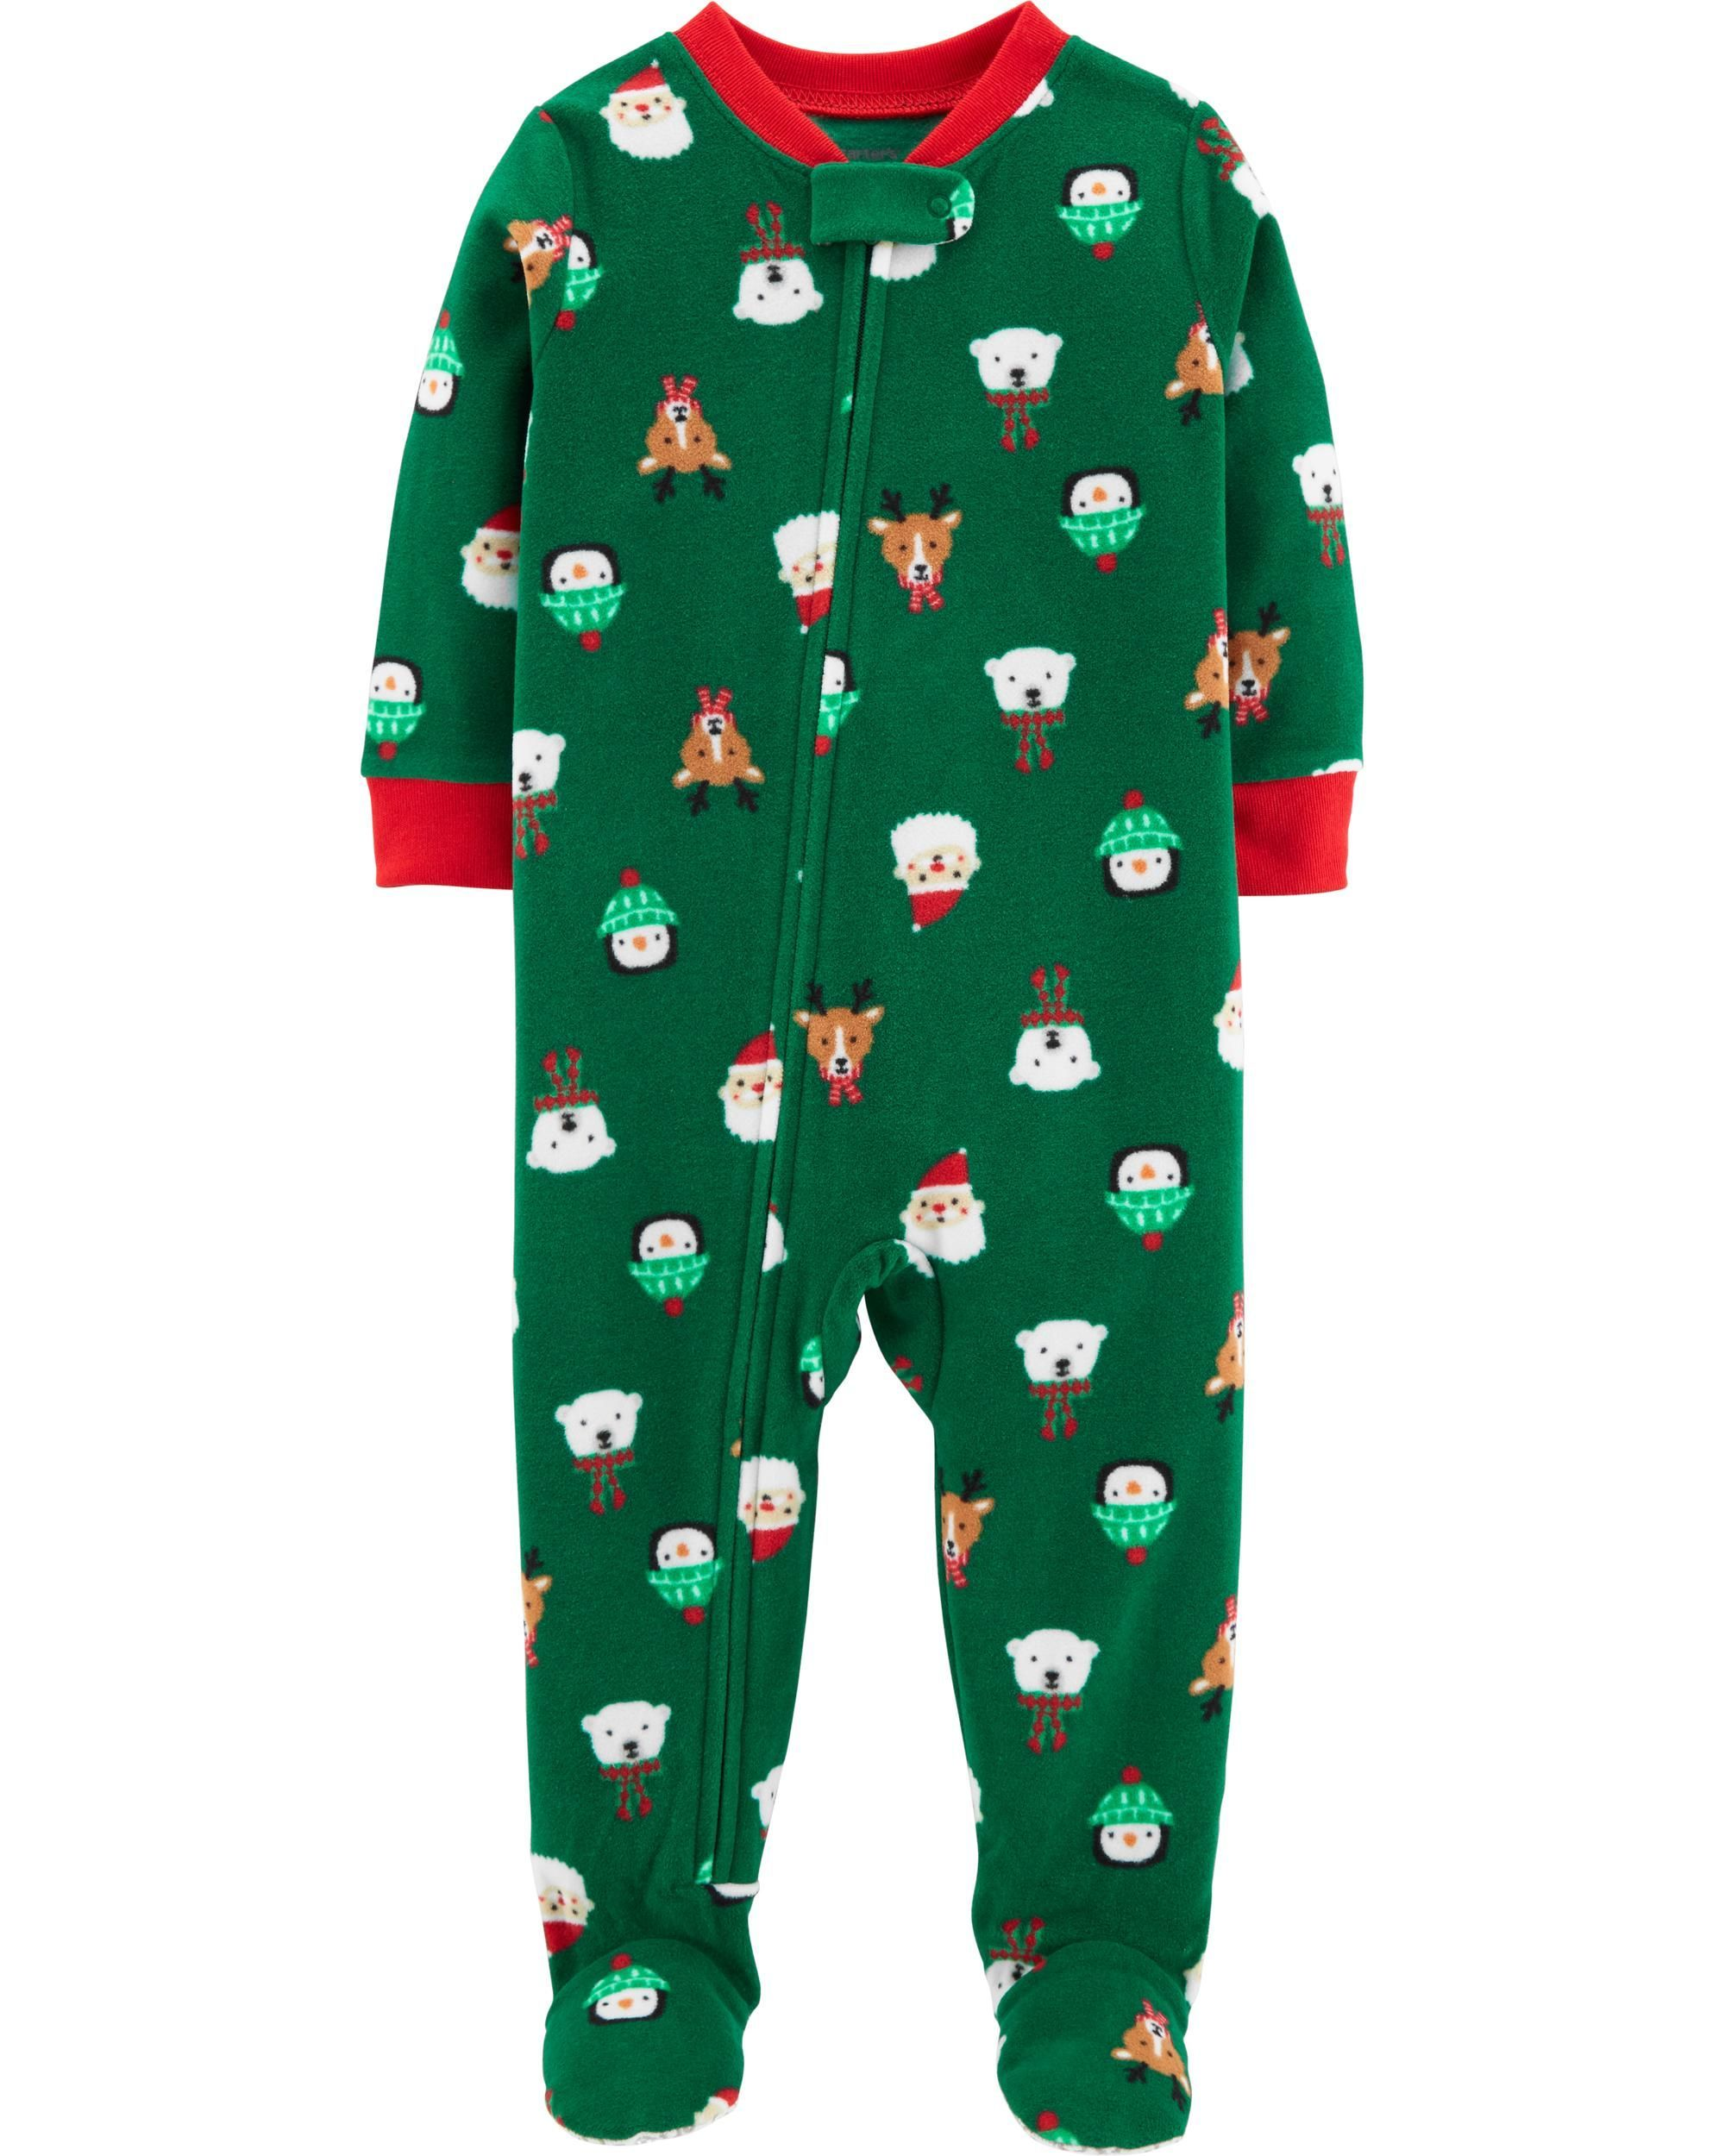 1Piece Baby Christmas Fleece PJs Kids clothing canada